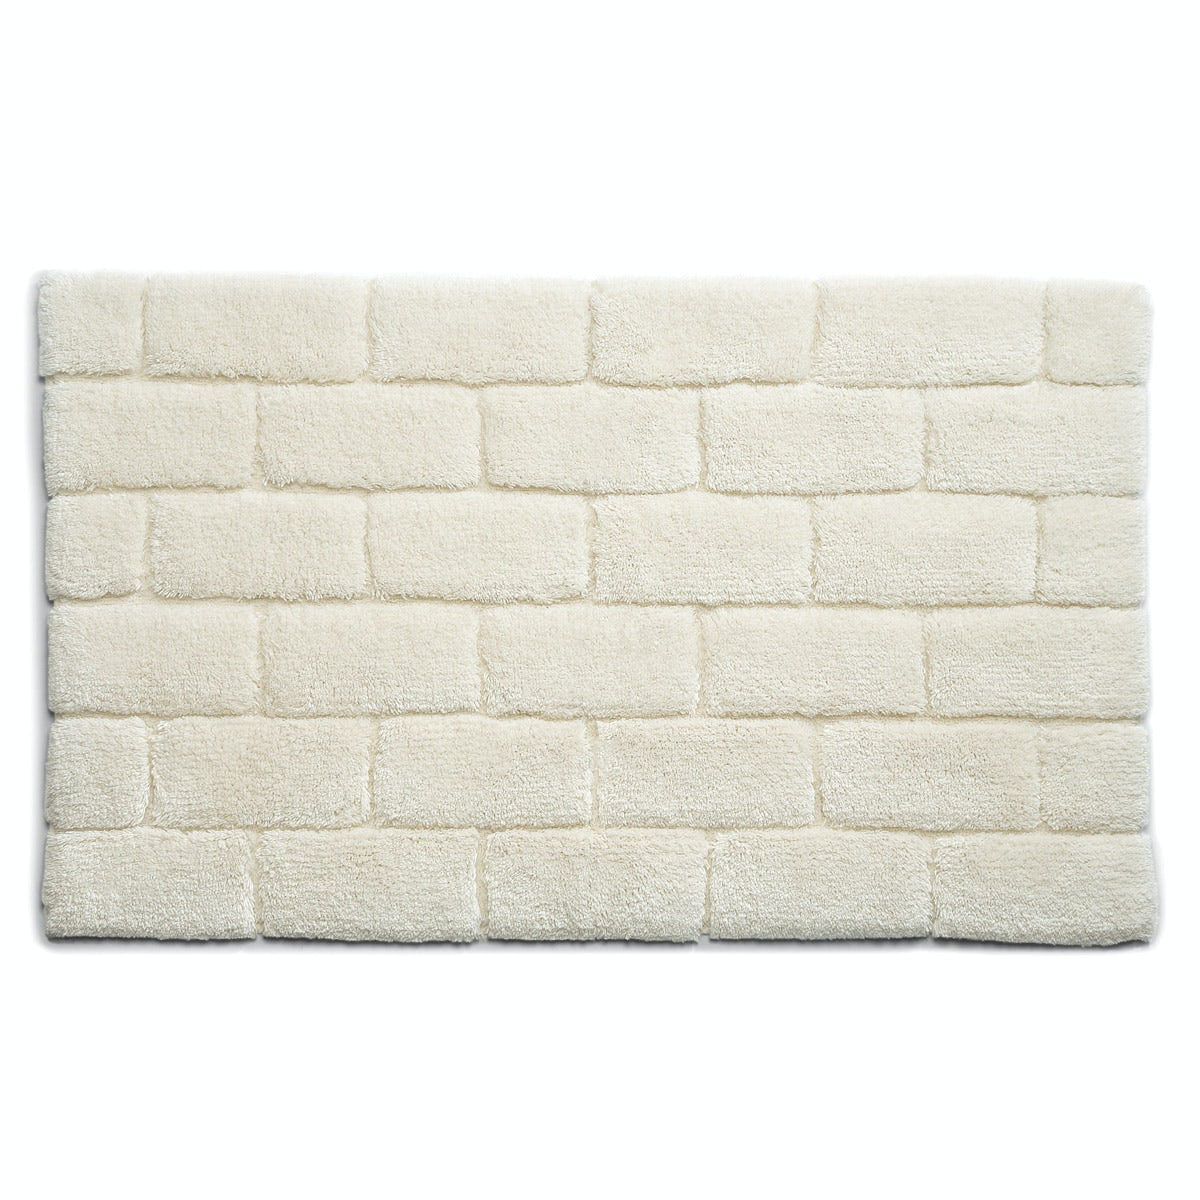 Hug Rug luxury bamboo brick cream bathroom mat 50 x 80cm